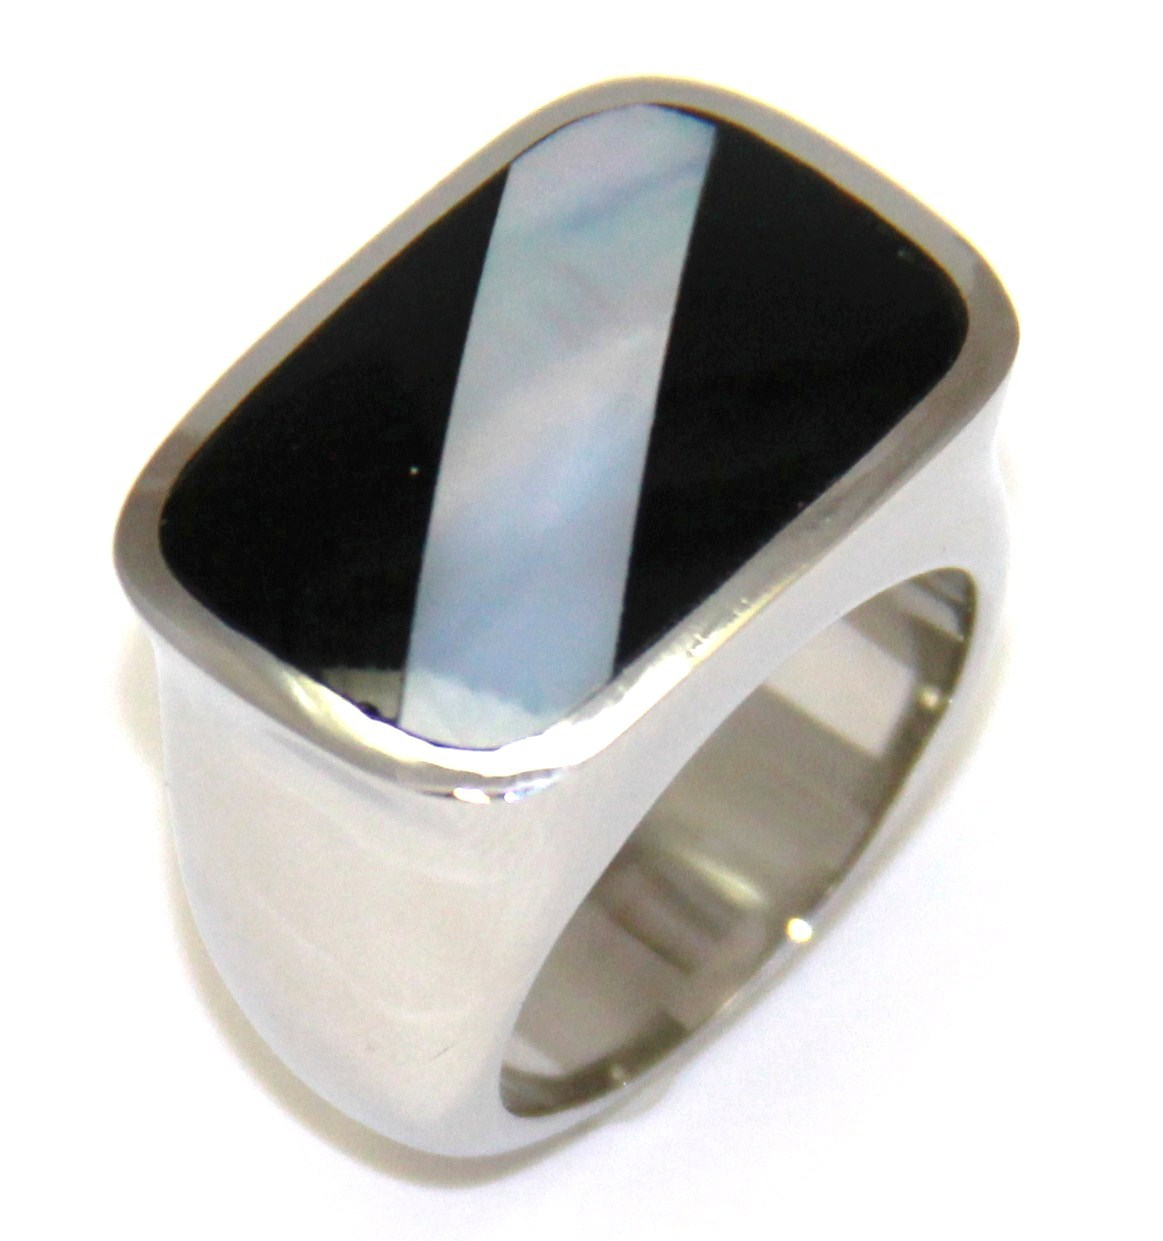 SSR2799 - Stunning Black Onyx Abalone Stainless Steel Ring Size 8 AFT